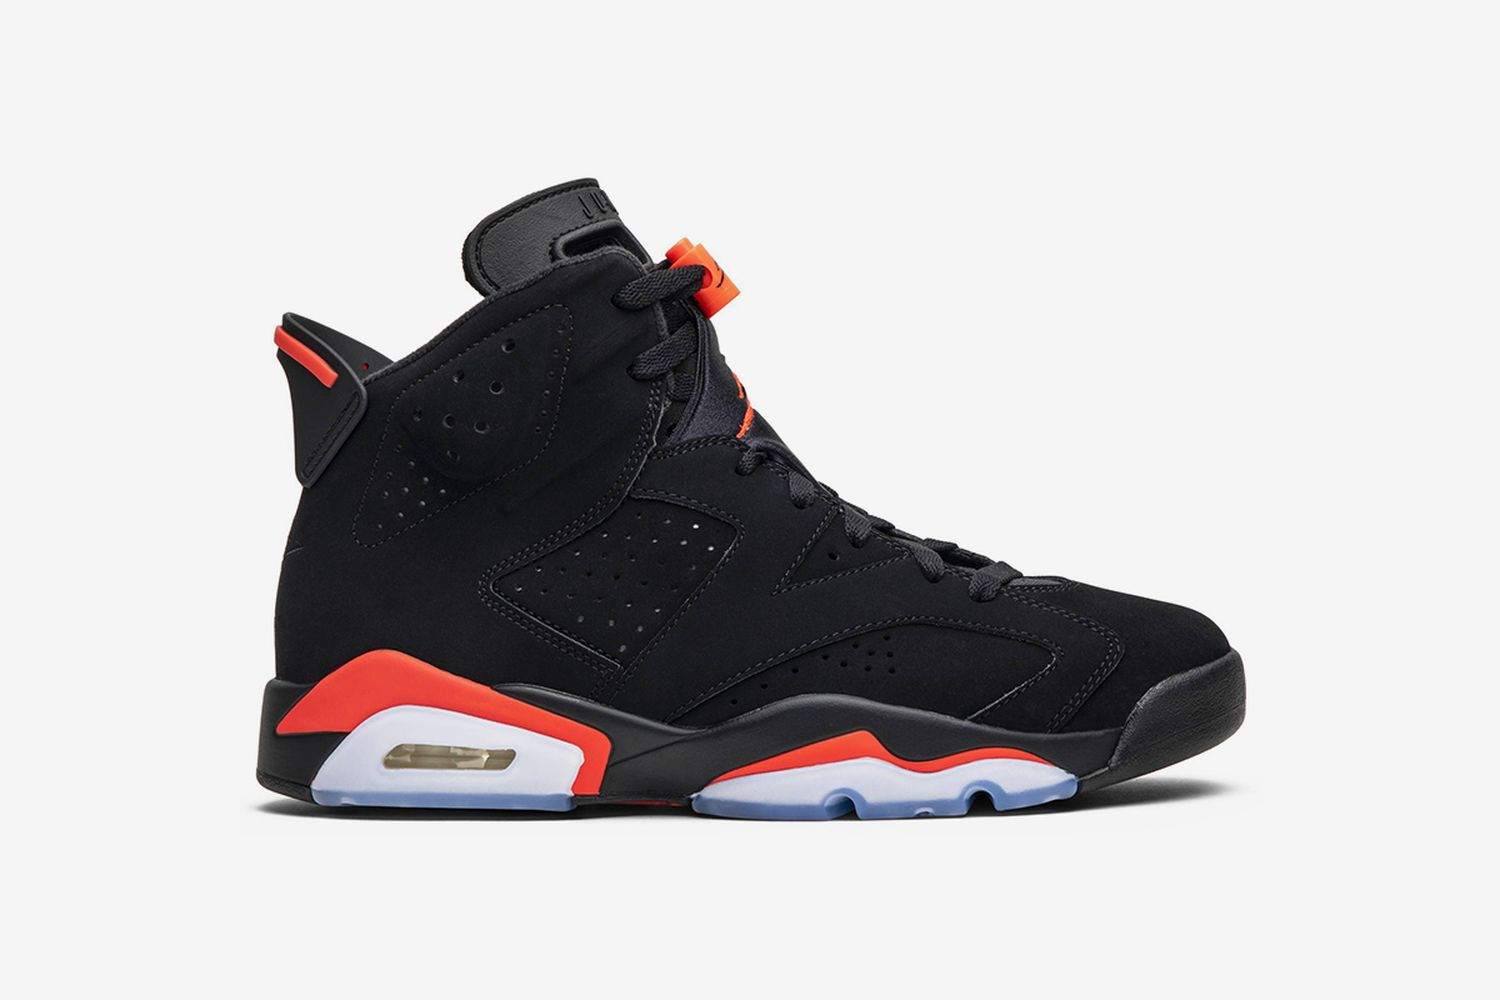 Air Jordan 6 Retro 'Infrared' 2019